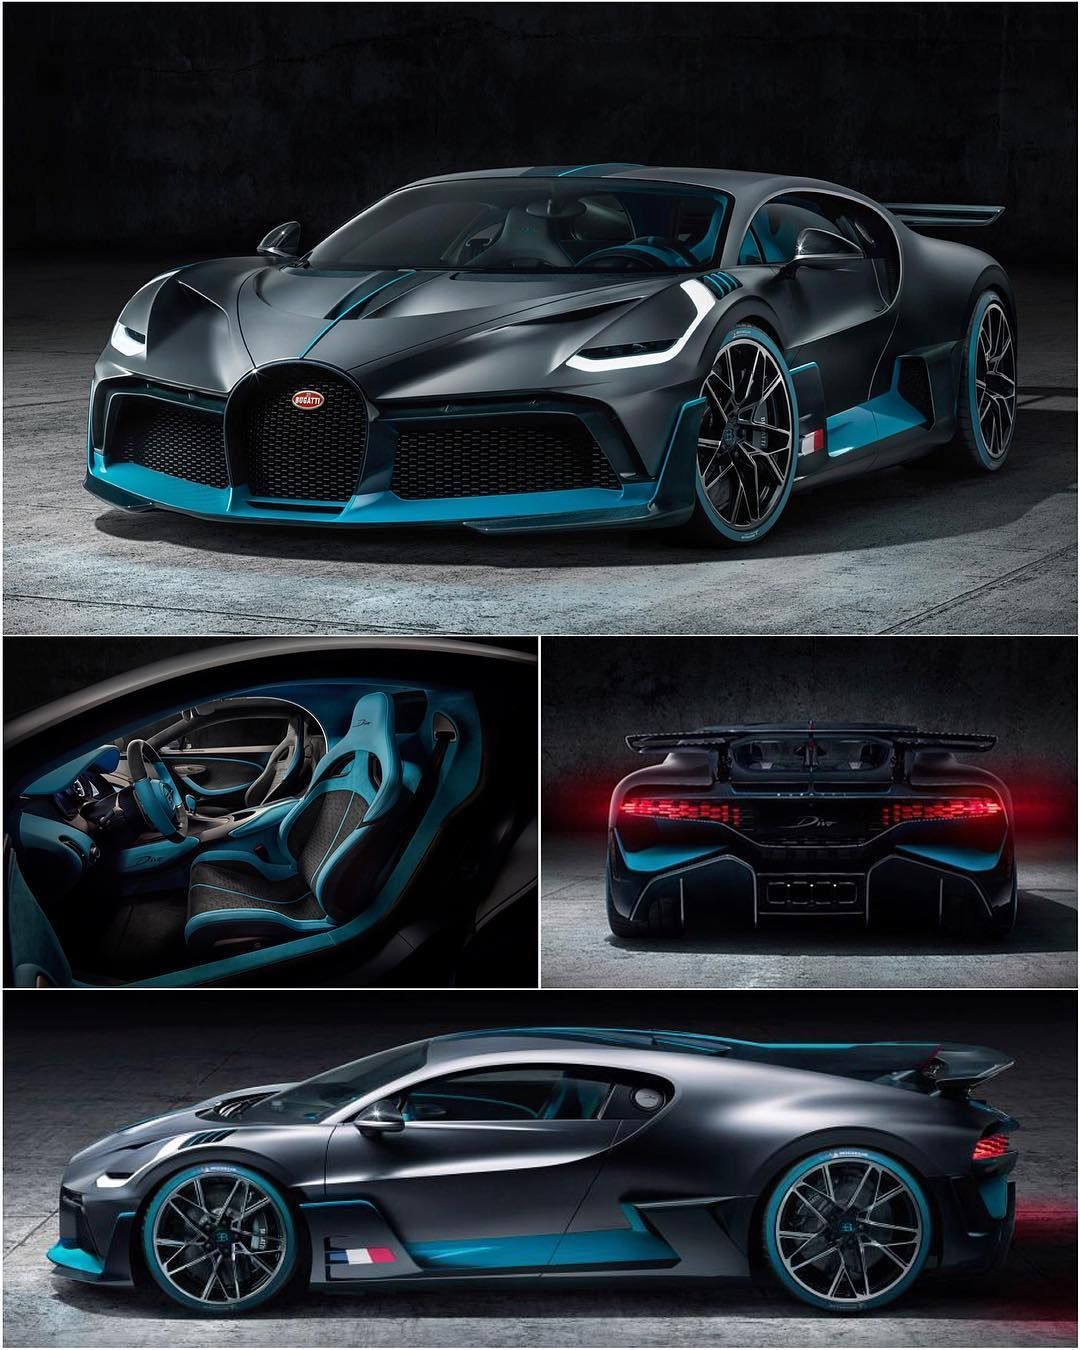 Bugatti Divo The Fastest Cars In The World Sporty Car Body Designs This Is Amazing Cars Fastest Sportsc Fast Sports Cars Sports Cars Bugatti Sports Car